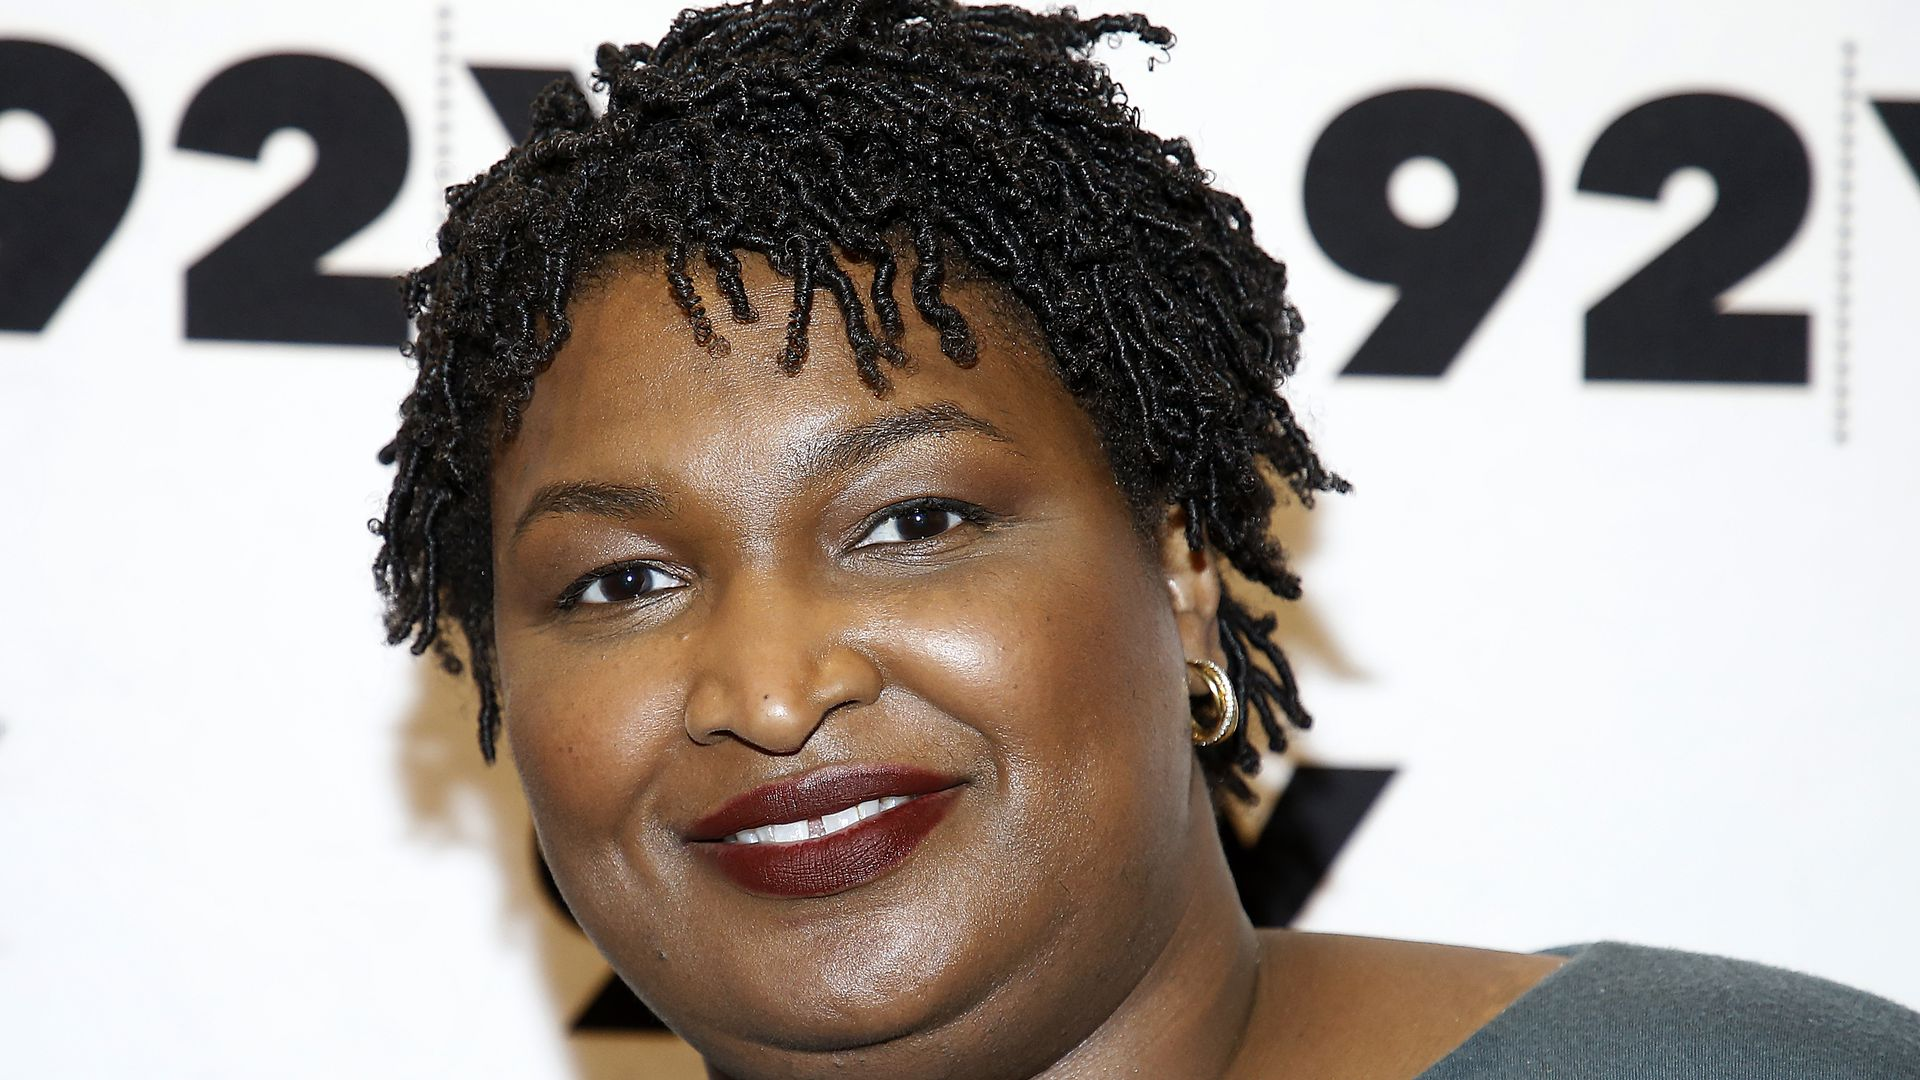 In this image, Stacey Abrams smiles at a camera.